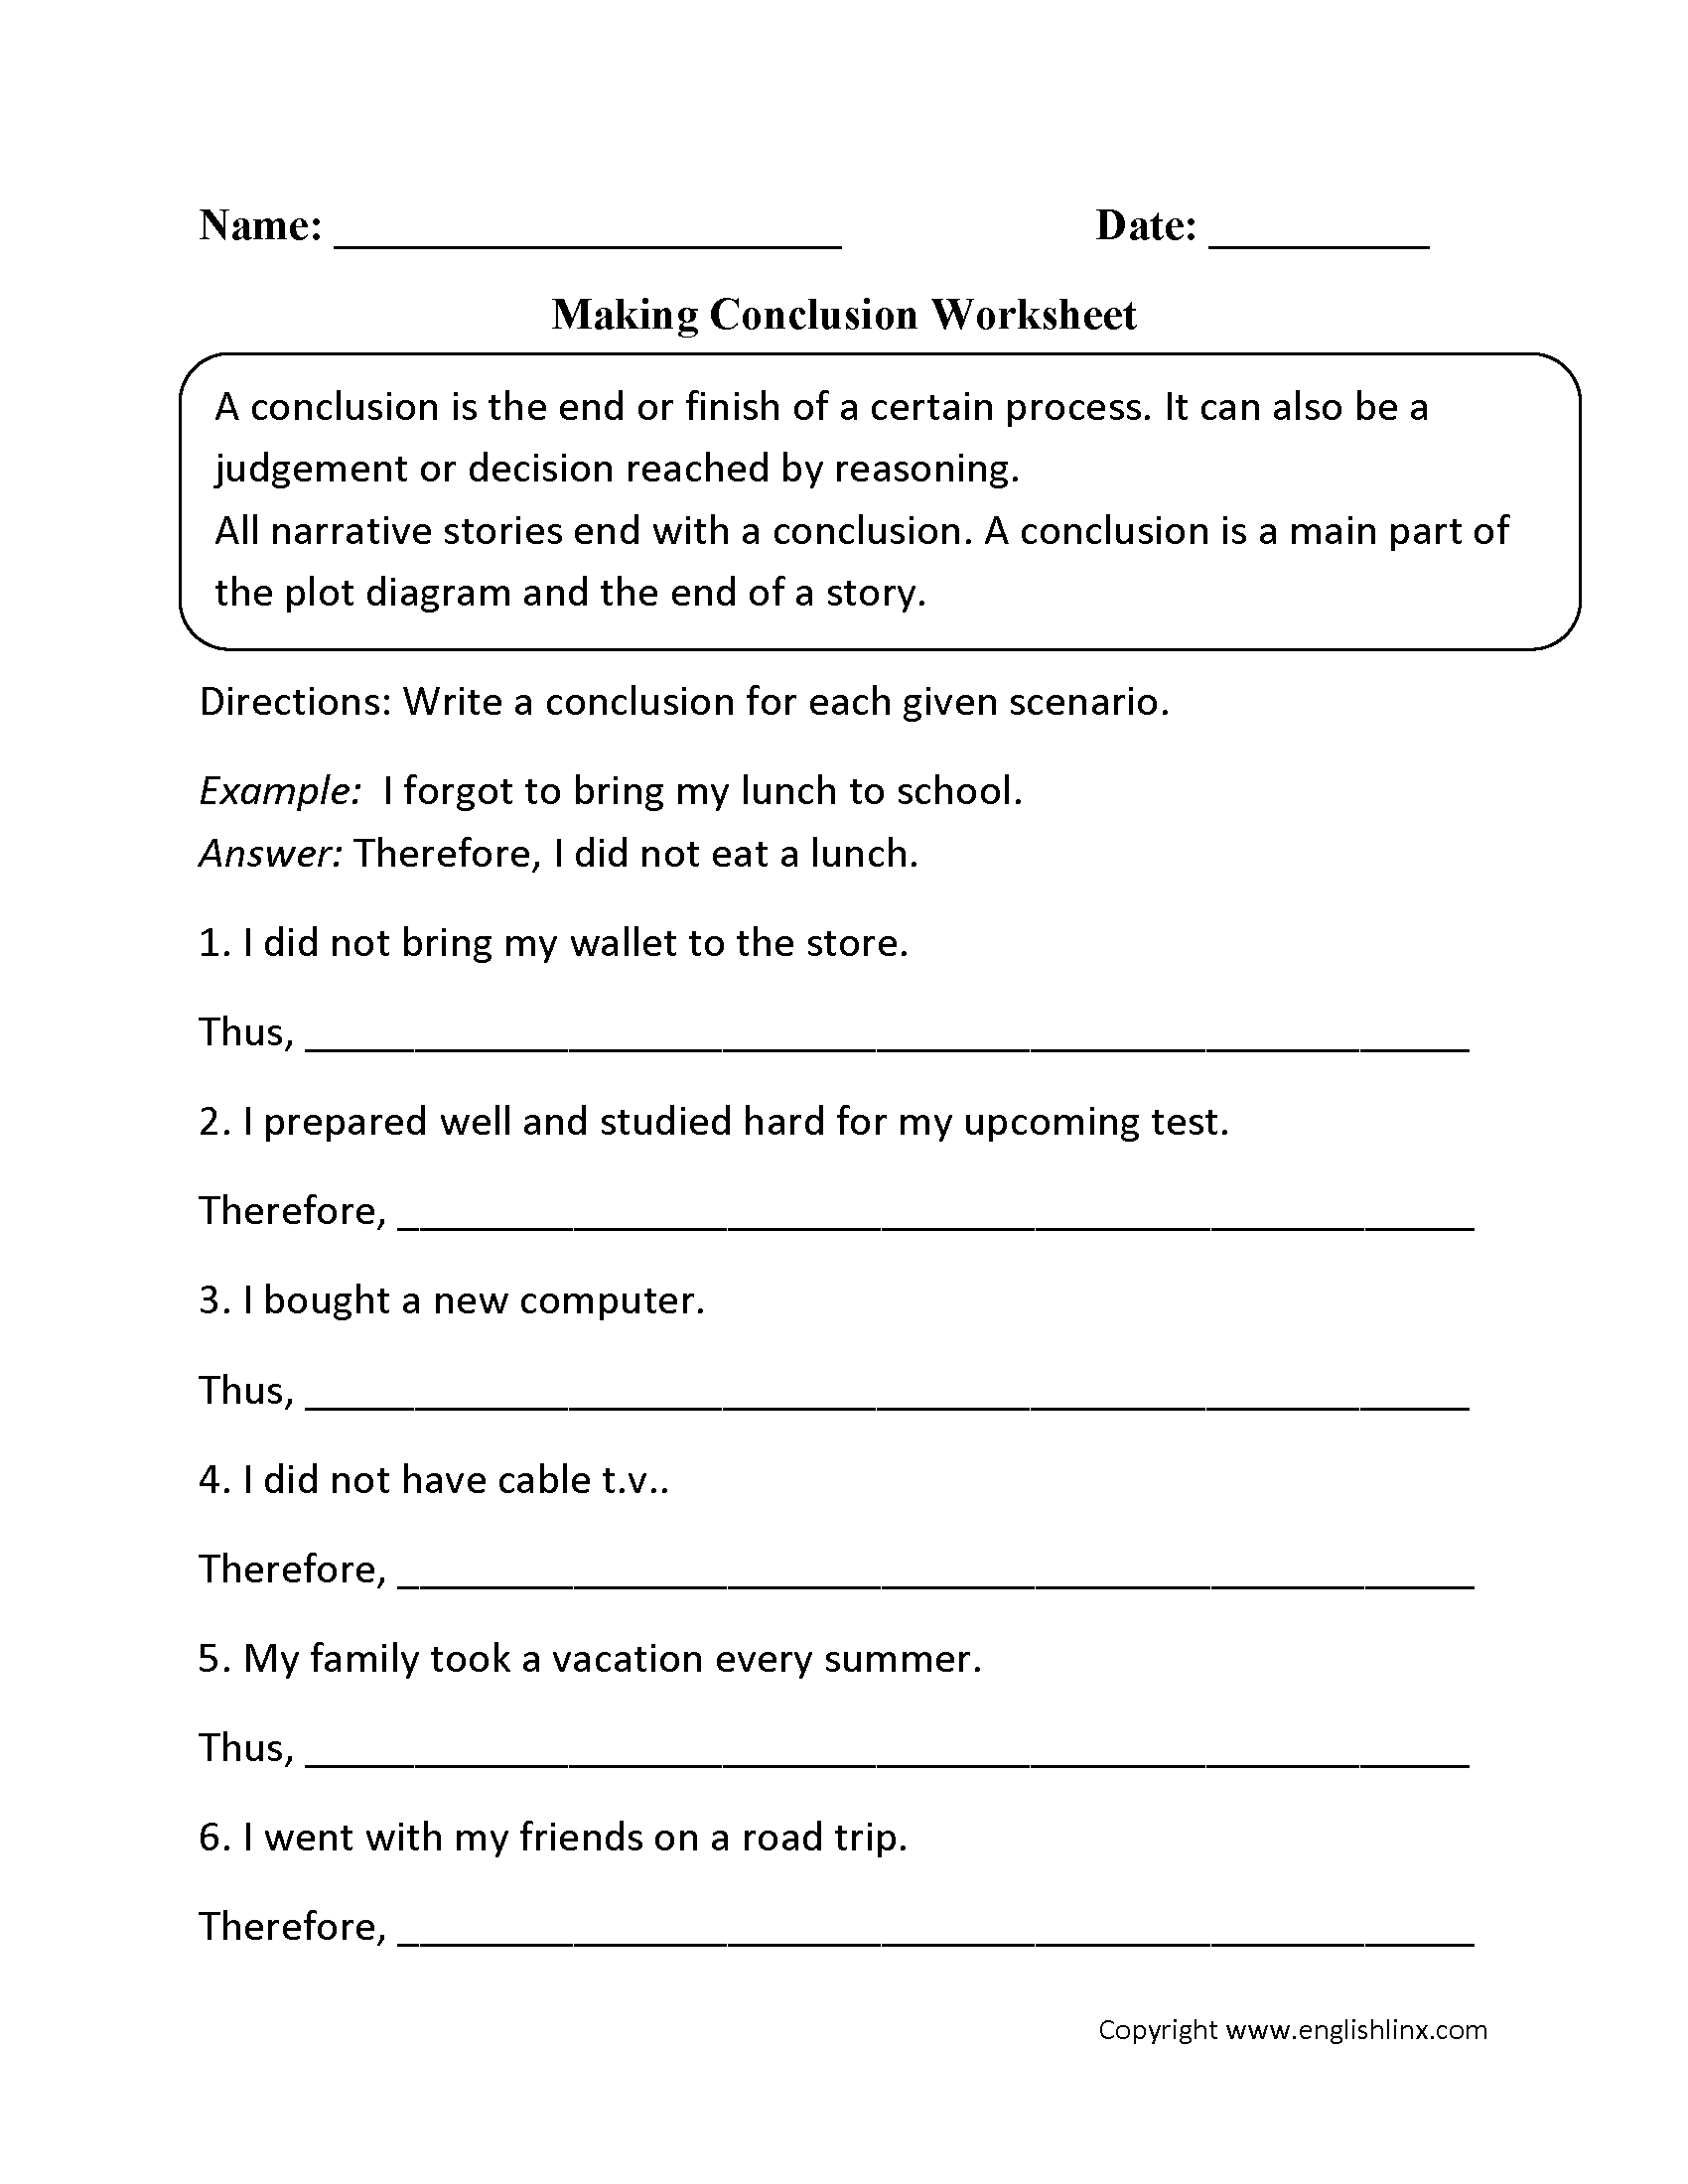 Free Worksheet Making Judgements Worksheets writing conclusions worksheets making conclusion worksheet worksheet